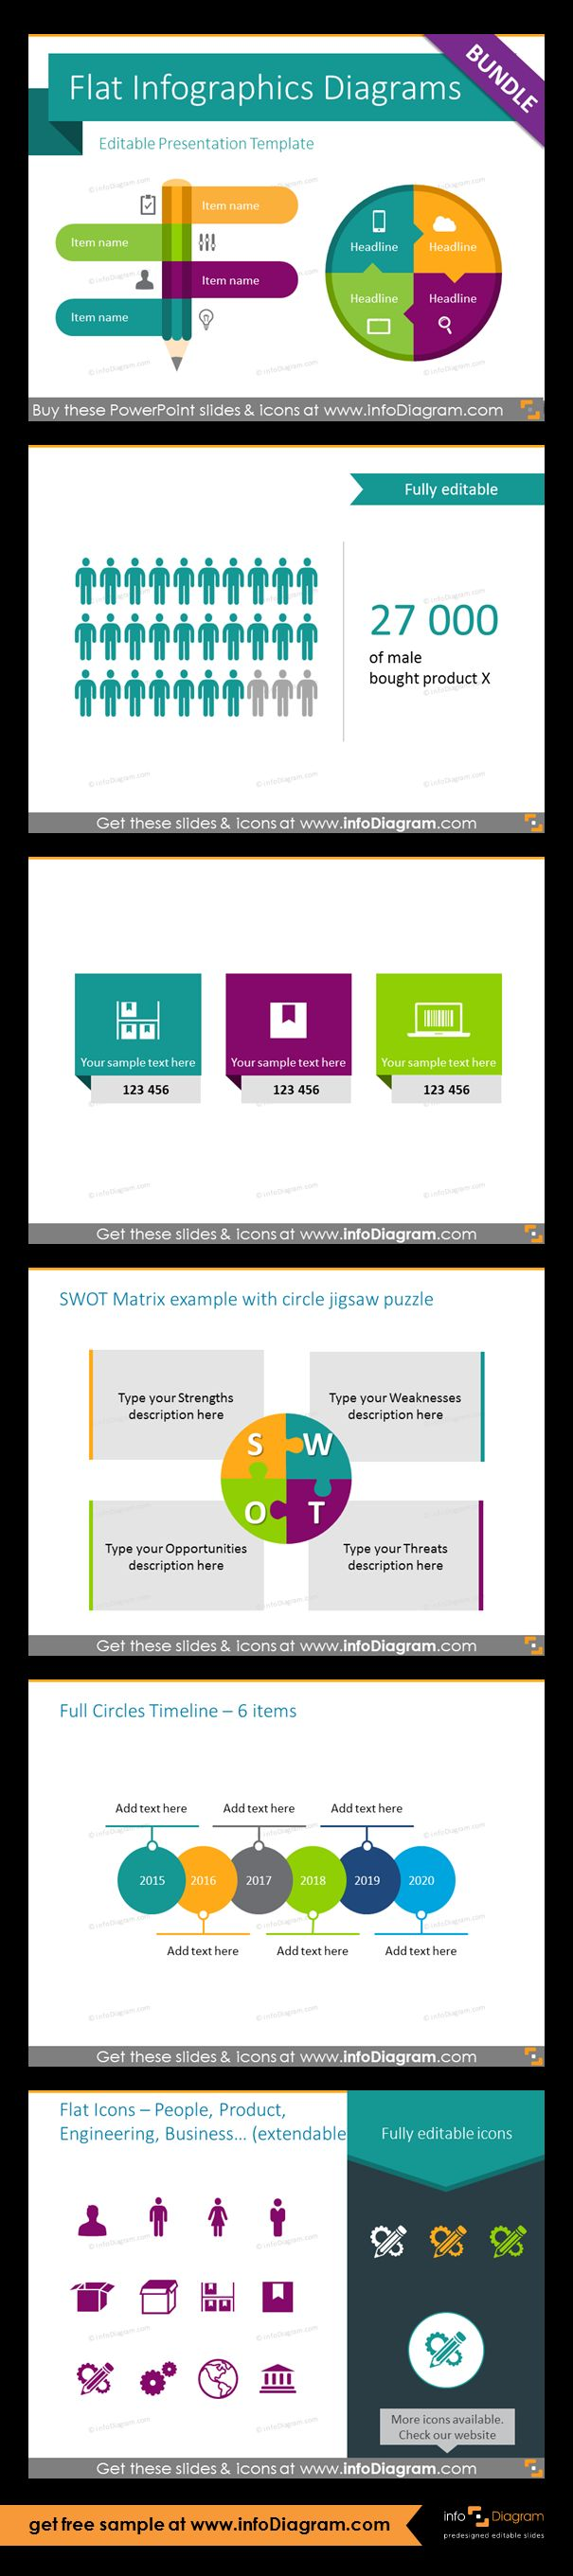 Infographics PowerPoint templates with modern flat design editable diagrams and vector icons. Example of presenting statistical information, three key data index infographics boxes, SWOT matrix template with circle jigsaw puzzle, full circles timeline for 6 elements, index of people, product, business flat icons. Fully editable style, size and colors.